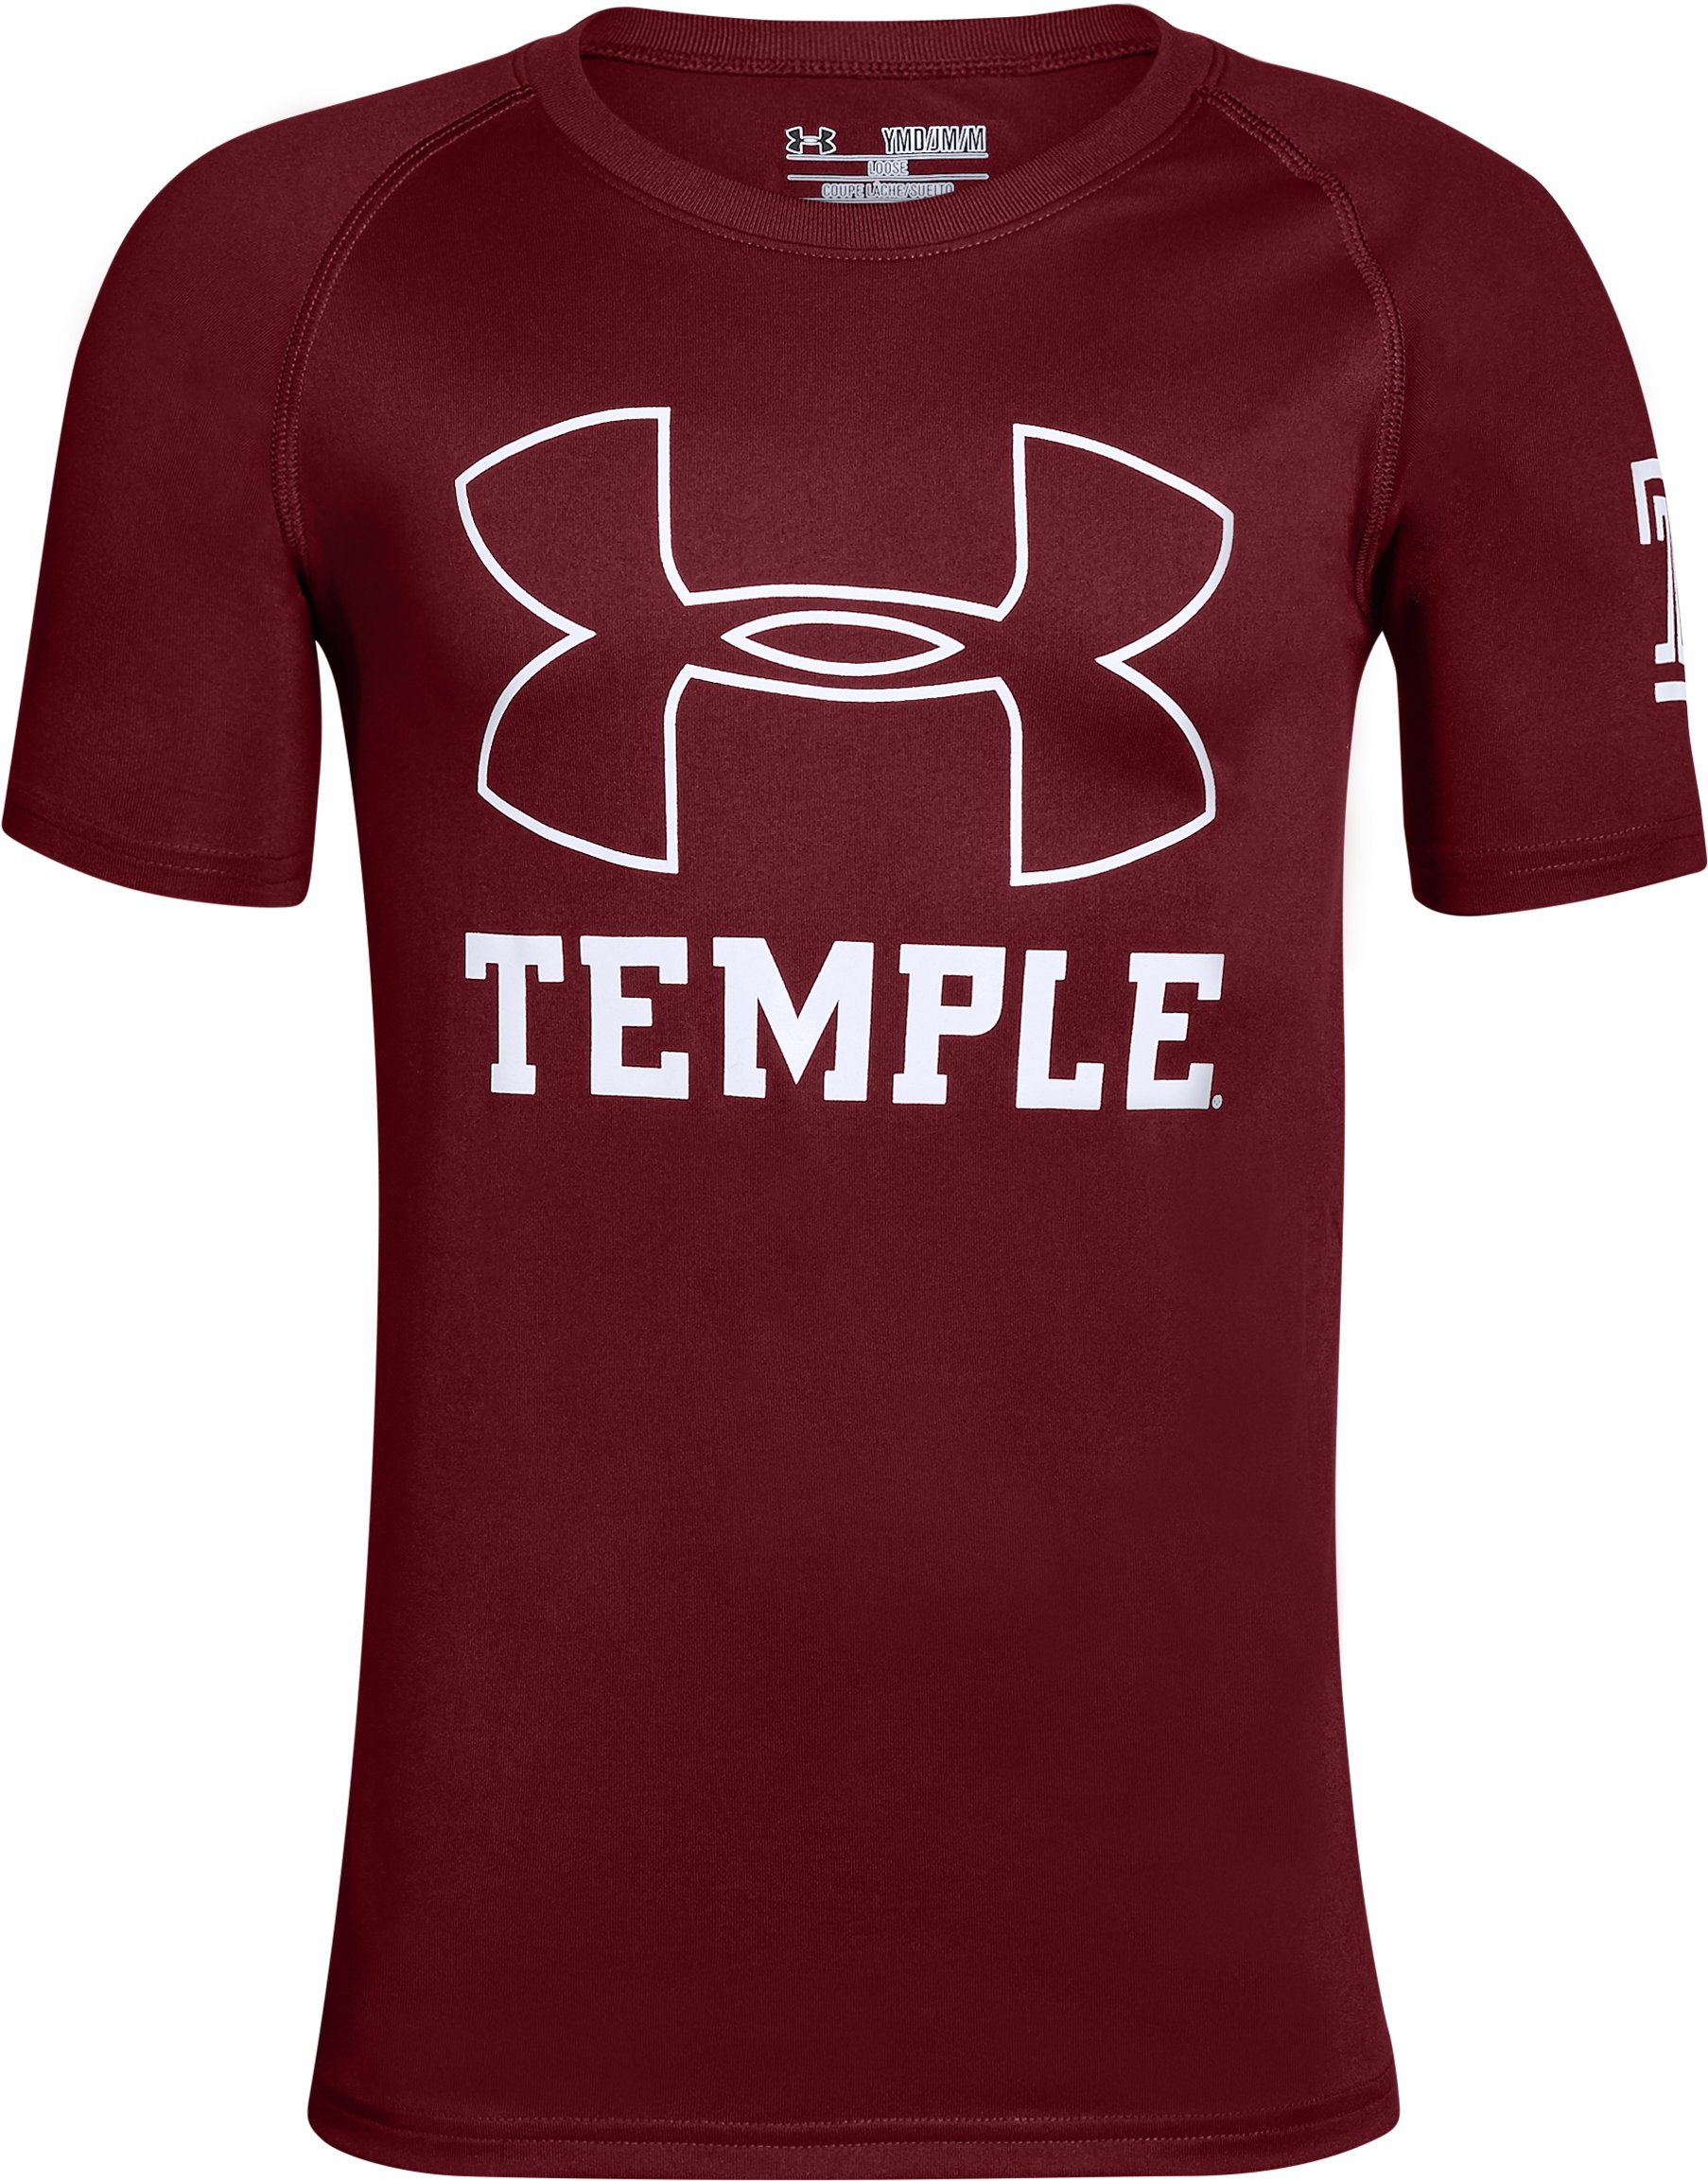 Boys' Temple Charged Cotton® T-Shirt, Cardinal